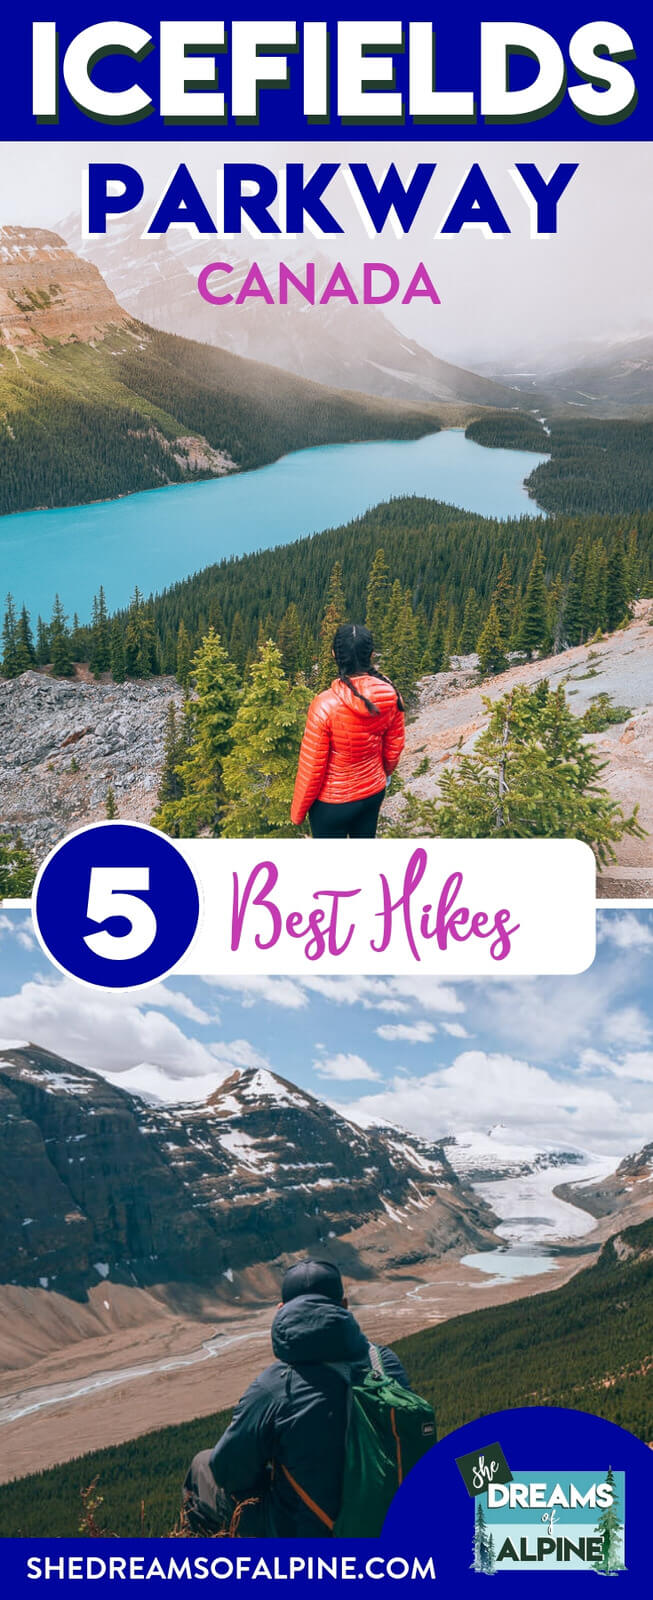 5 Breathtaking Icefields Parkway Hikes